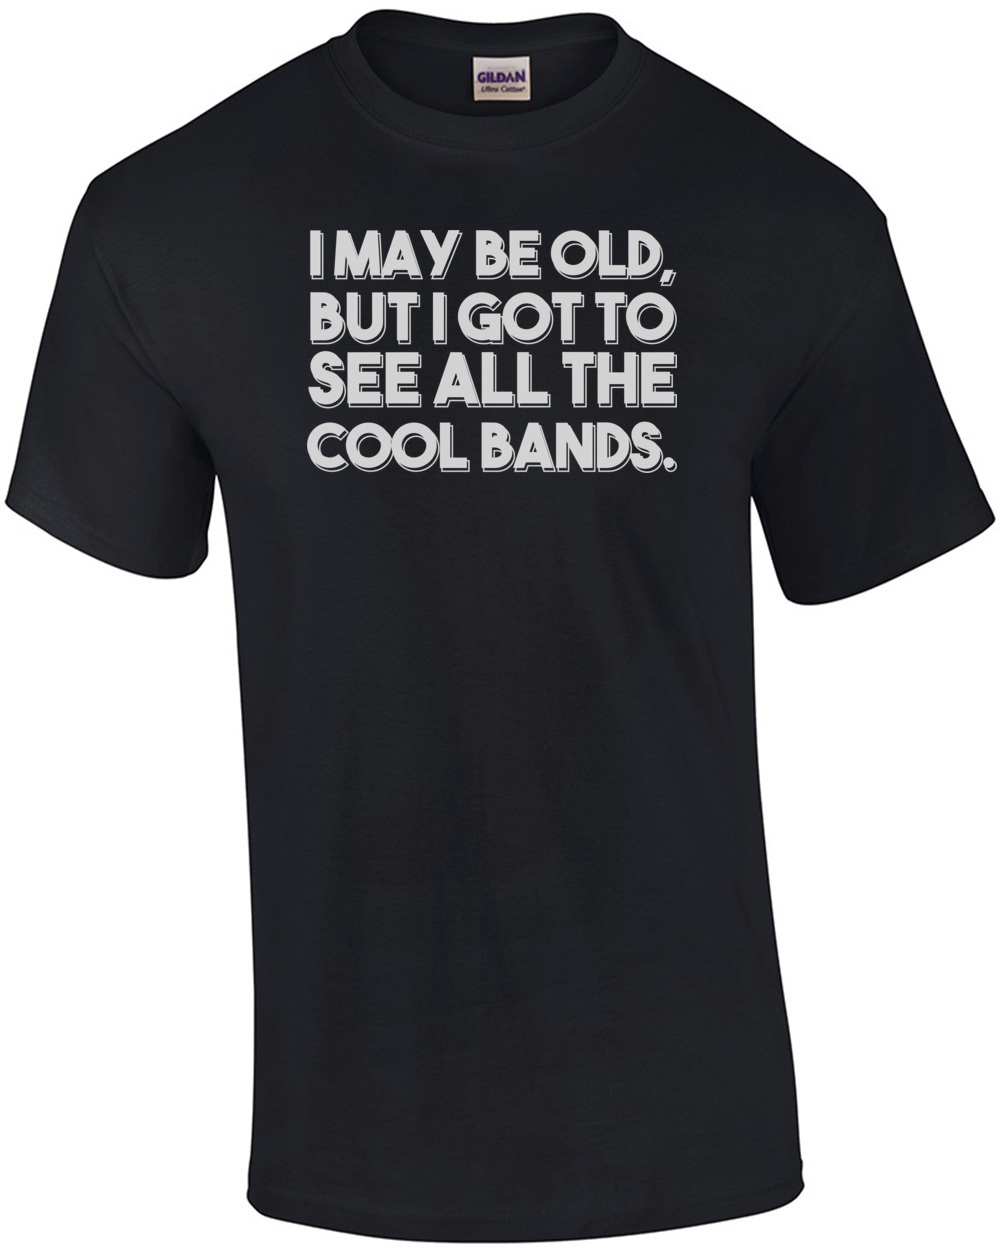 I May Be Old, But I Got To See All The Cool Bands. Funny T-Shirt